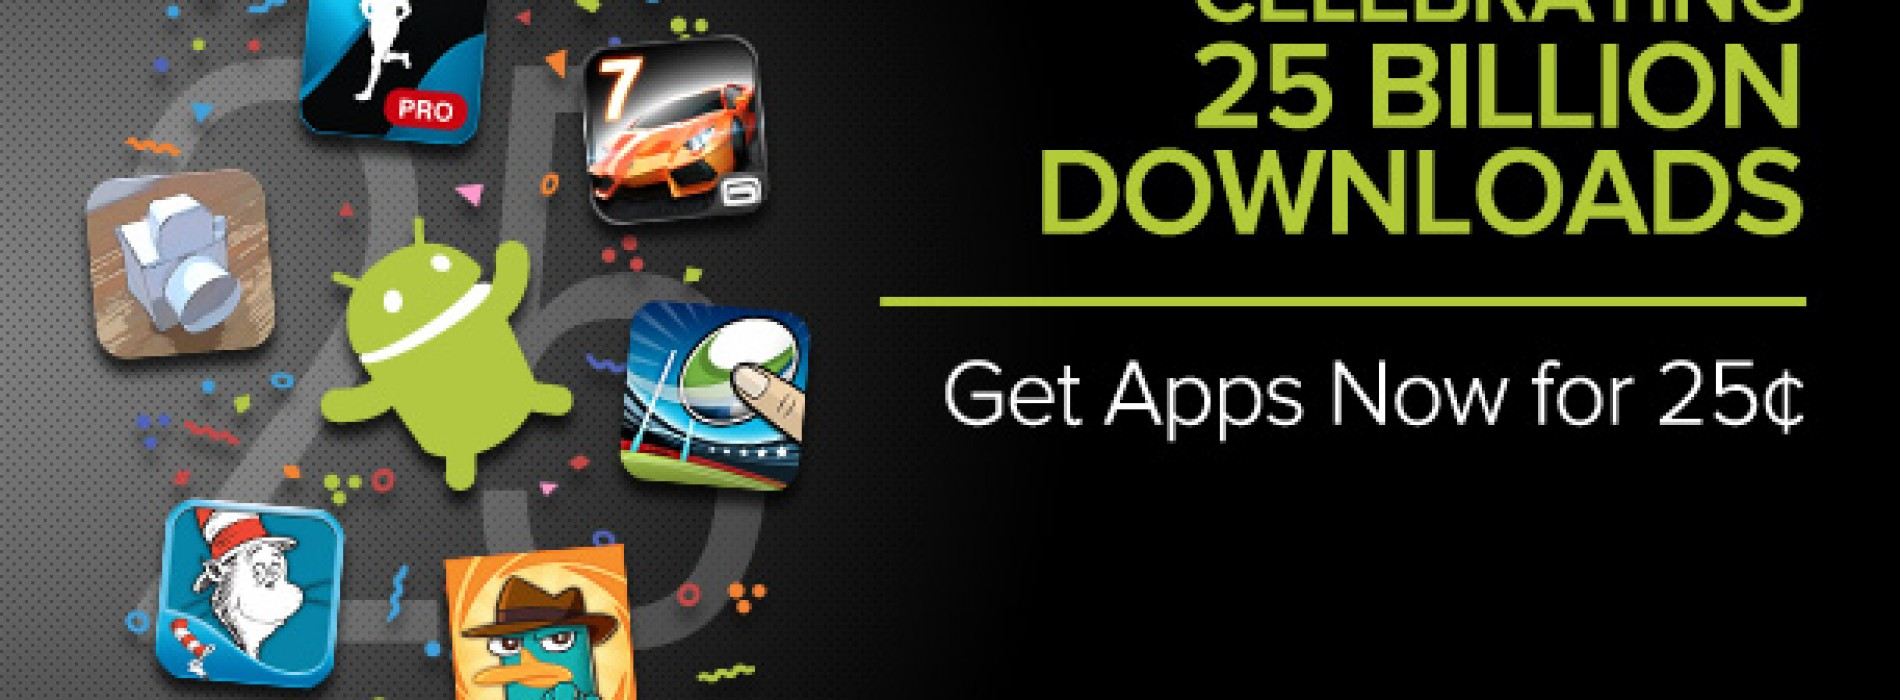 List of apps discounted to 25¢ to celebrate 25 Billion app installs